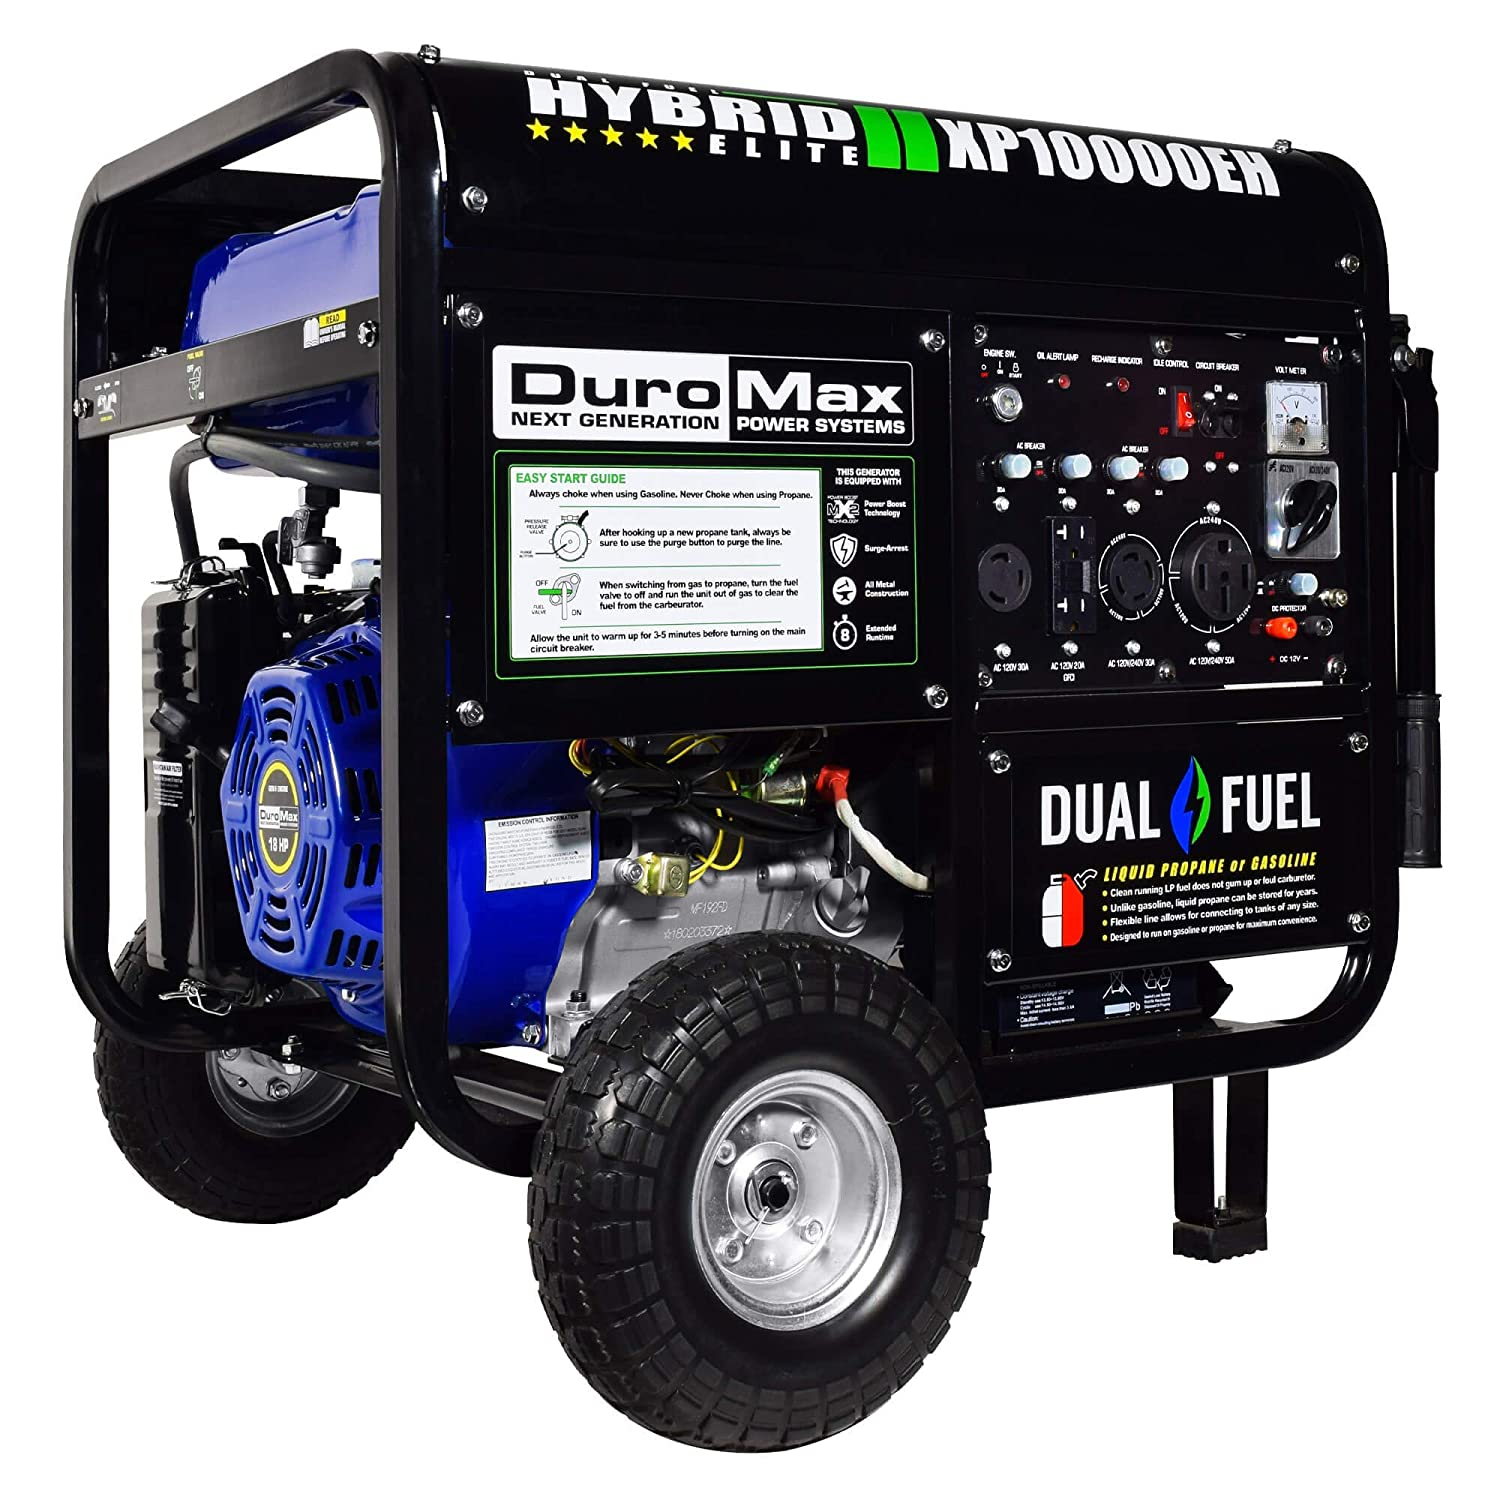 Duromax Xp10000eh 10000 Watt Dual Fuel Hybrid Generator International Durastar Air Tank Schematic W Elec Start 50 State Garden Outdoor